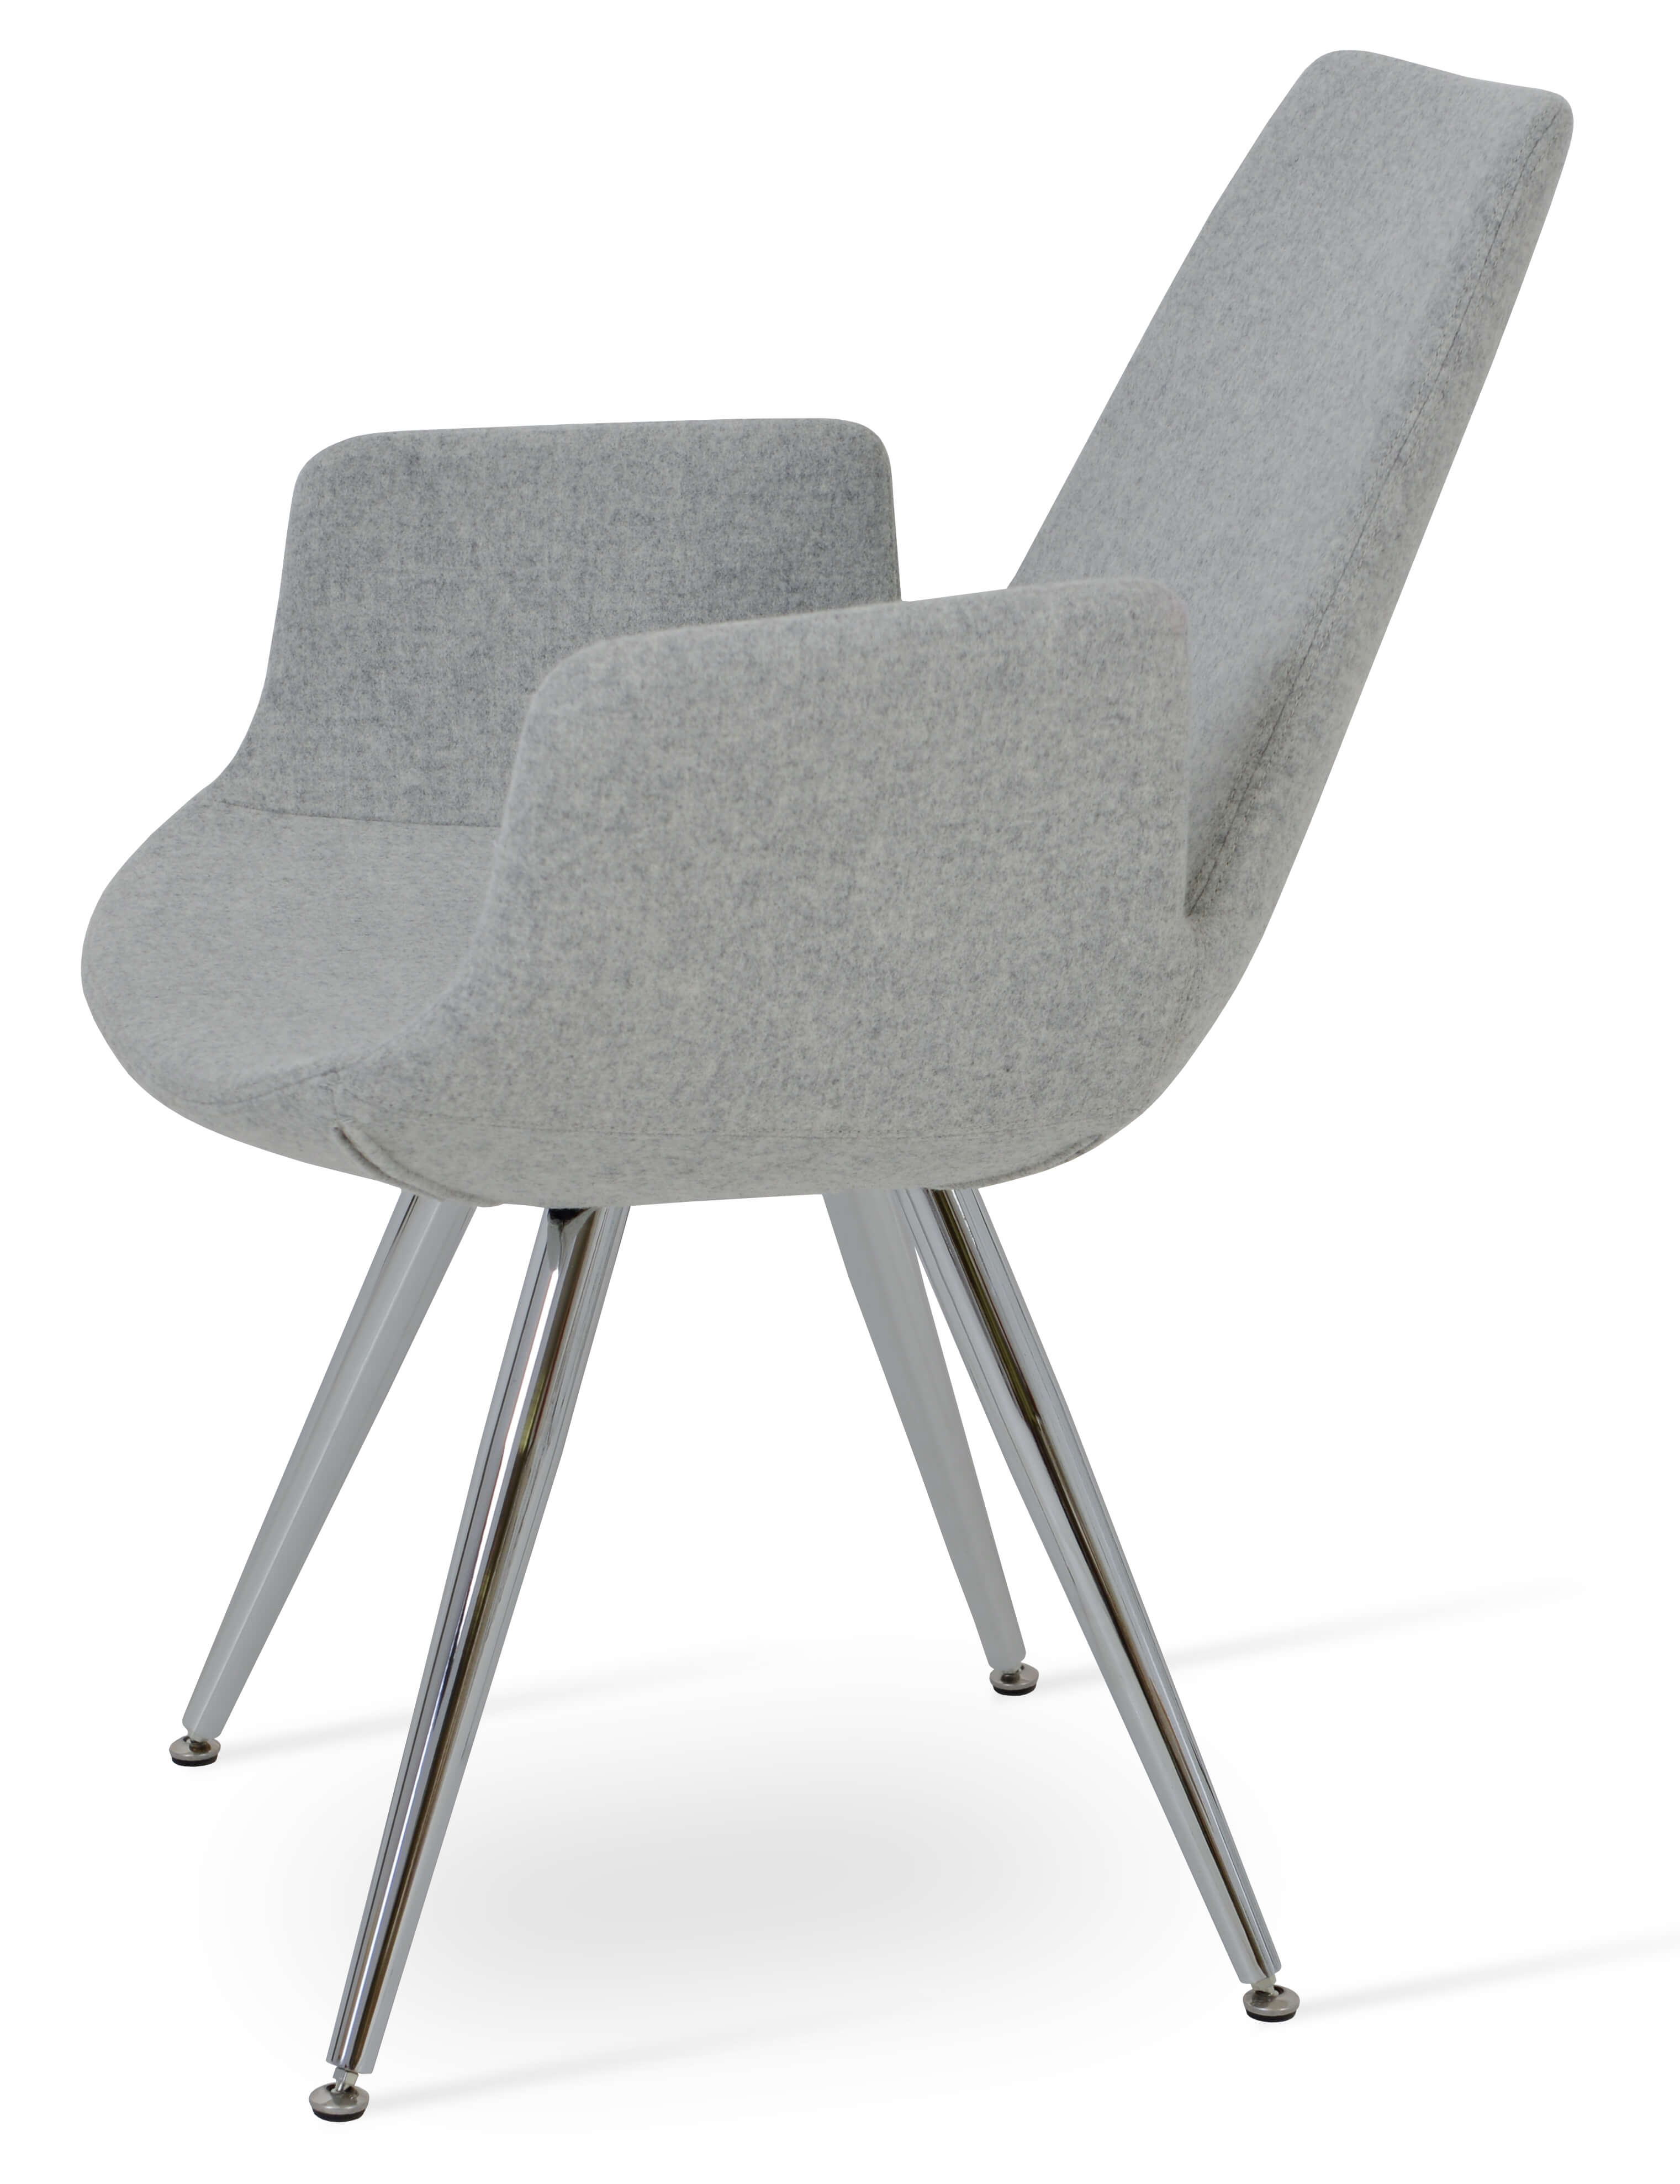 Eiffel Arm Star Chair Stainless Steel Turquoise Camira Wool Adjule Foot Caps By Sohoconcept Furniture